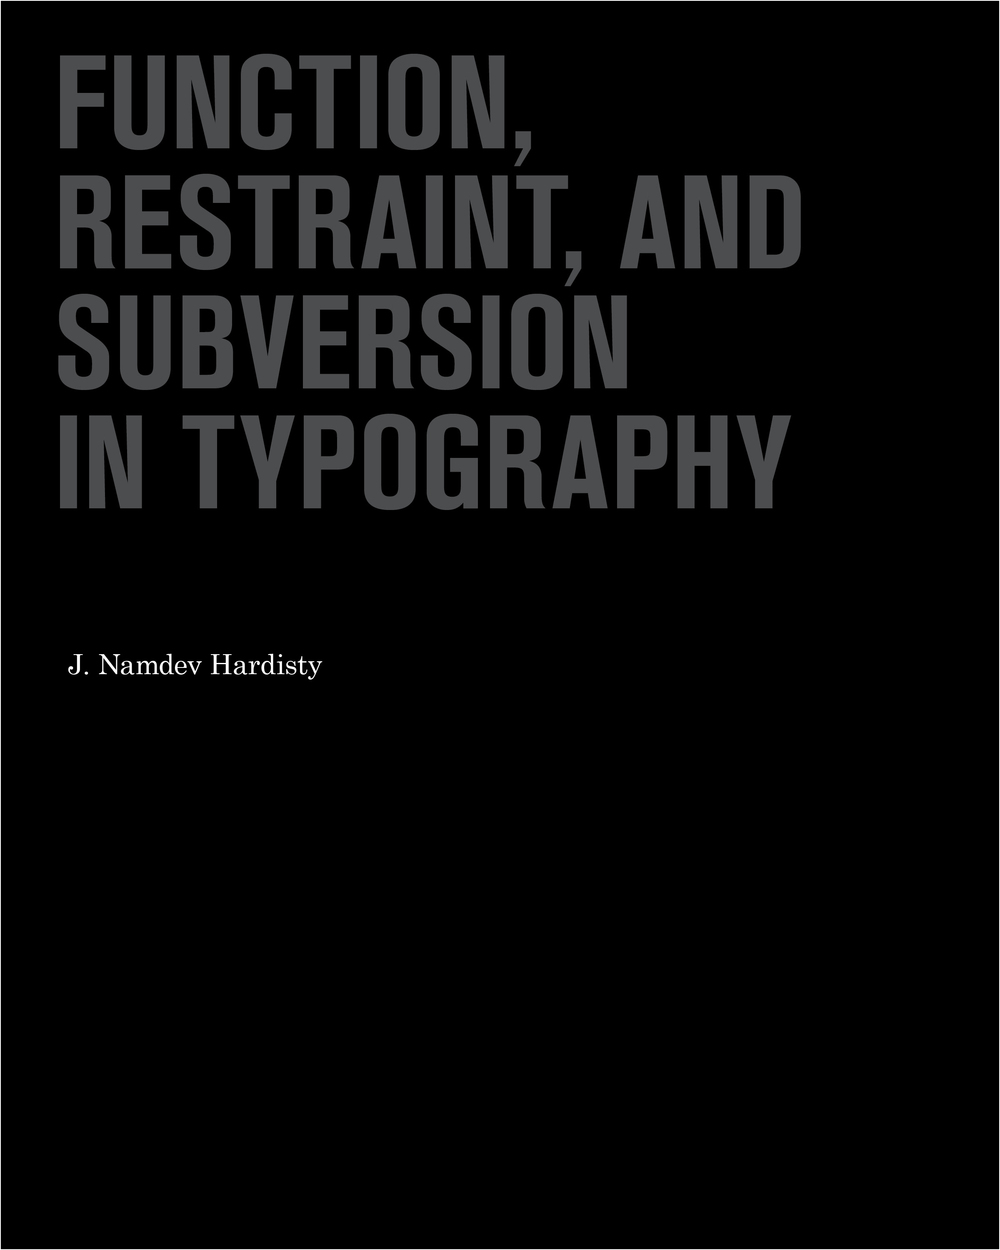 Function, Restraint & Subversion in Typography     (Princeton Architectural Press, 2011)   An overview of the new typography-driven design of the 00's, the cover is a simple treatment of a debossed, spot varnish on a black ground. Essentially functional, restrained and subversive.  This book was designed, written and compiled by Namdev Hardisty.   To see the full book design  click here .